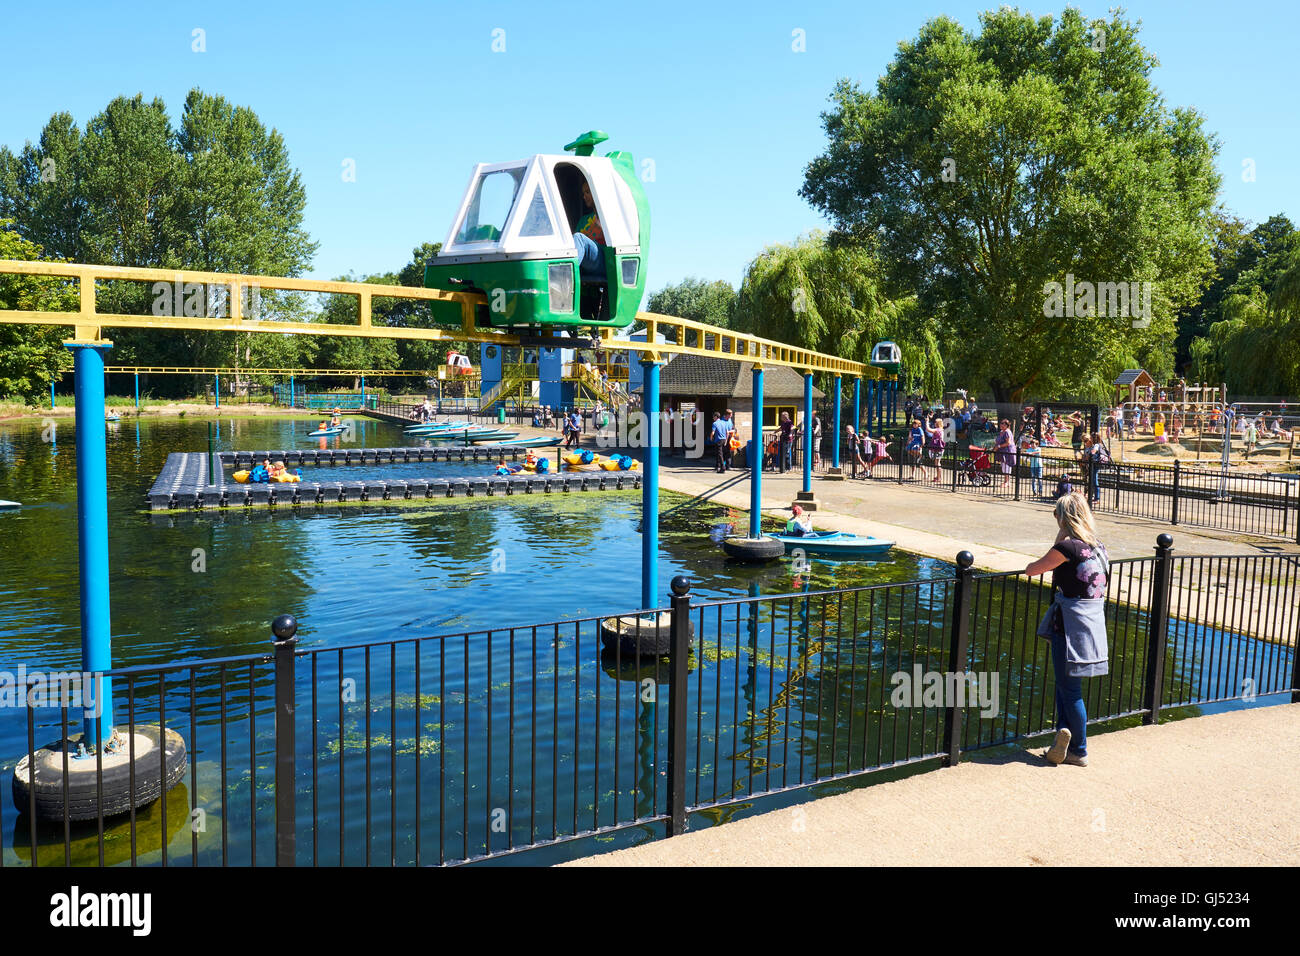 Monorail At Wicksteed Park The Second Oldest Theme Park In The UK Kettering Northamptonshire - Stock Image